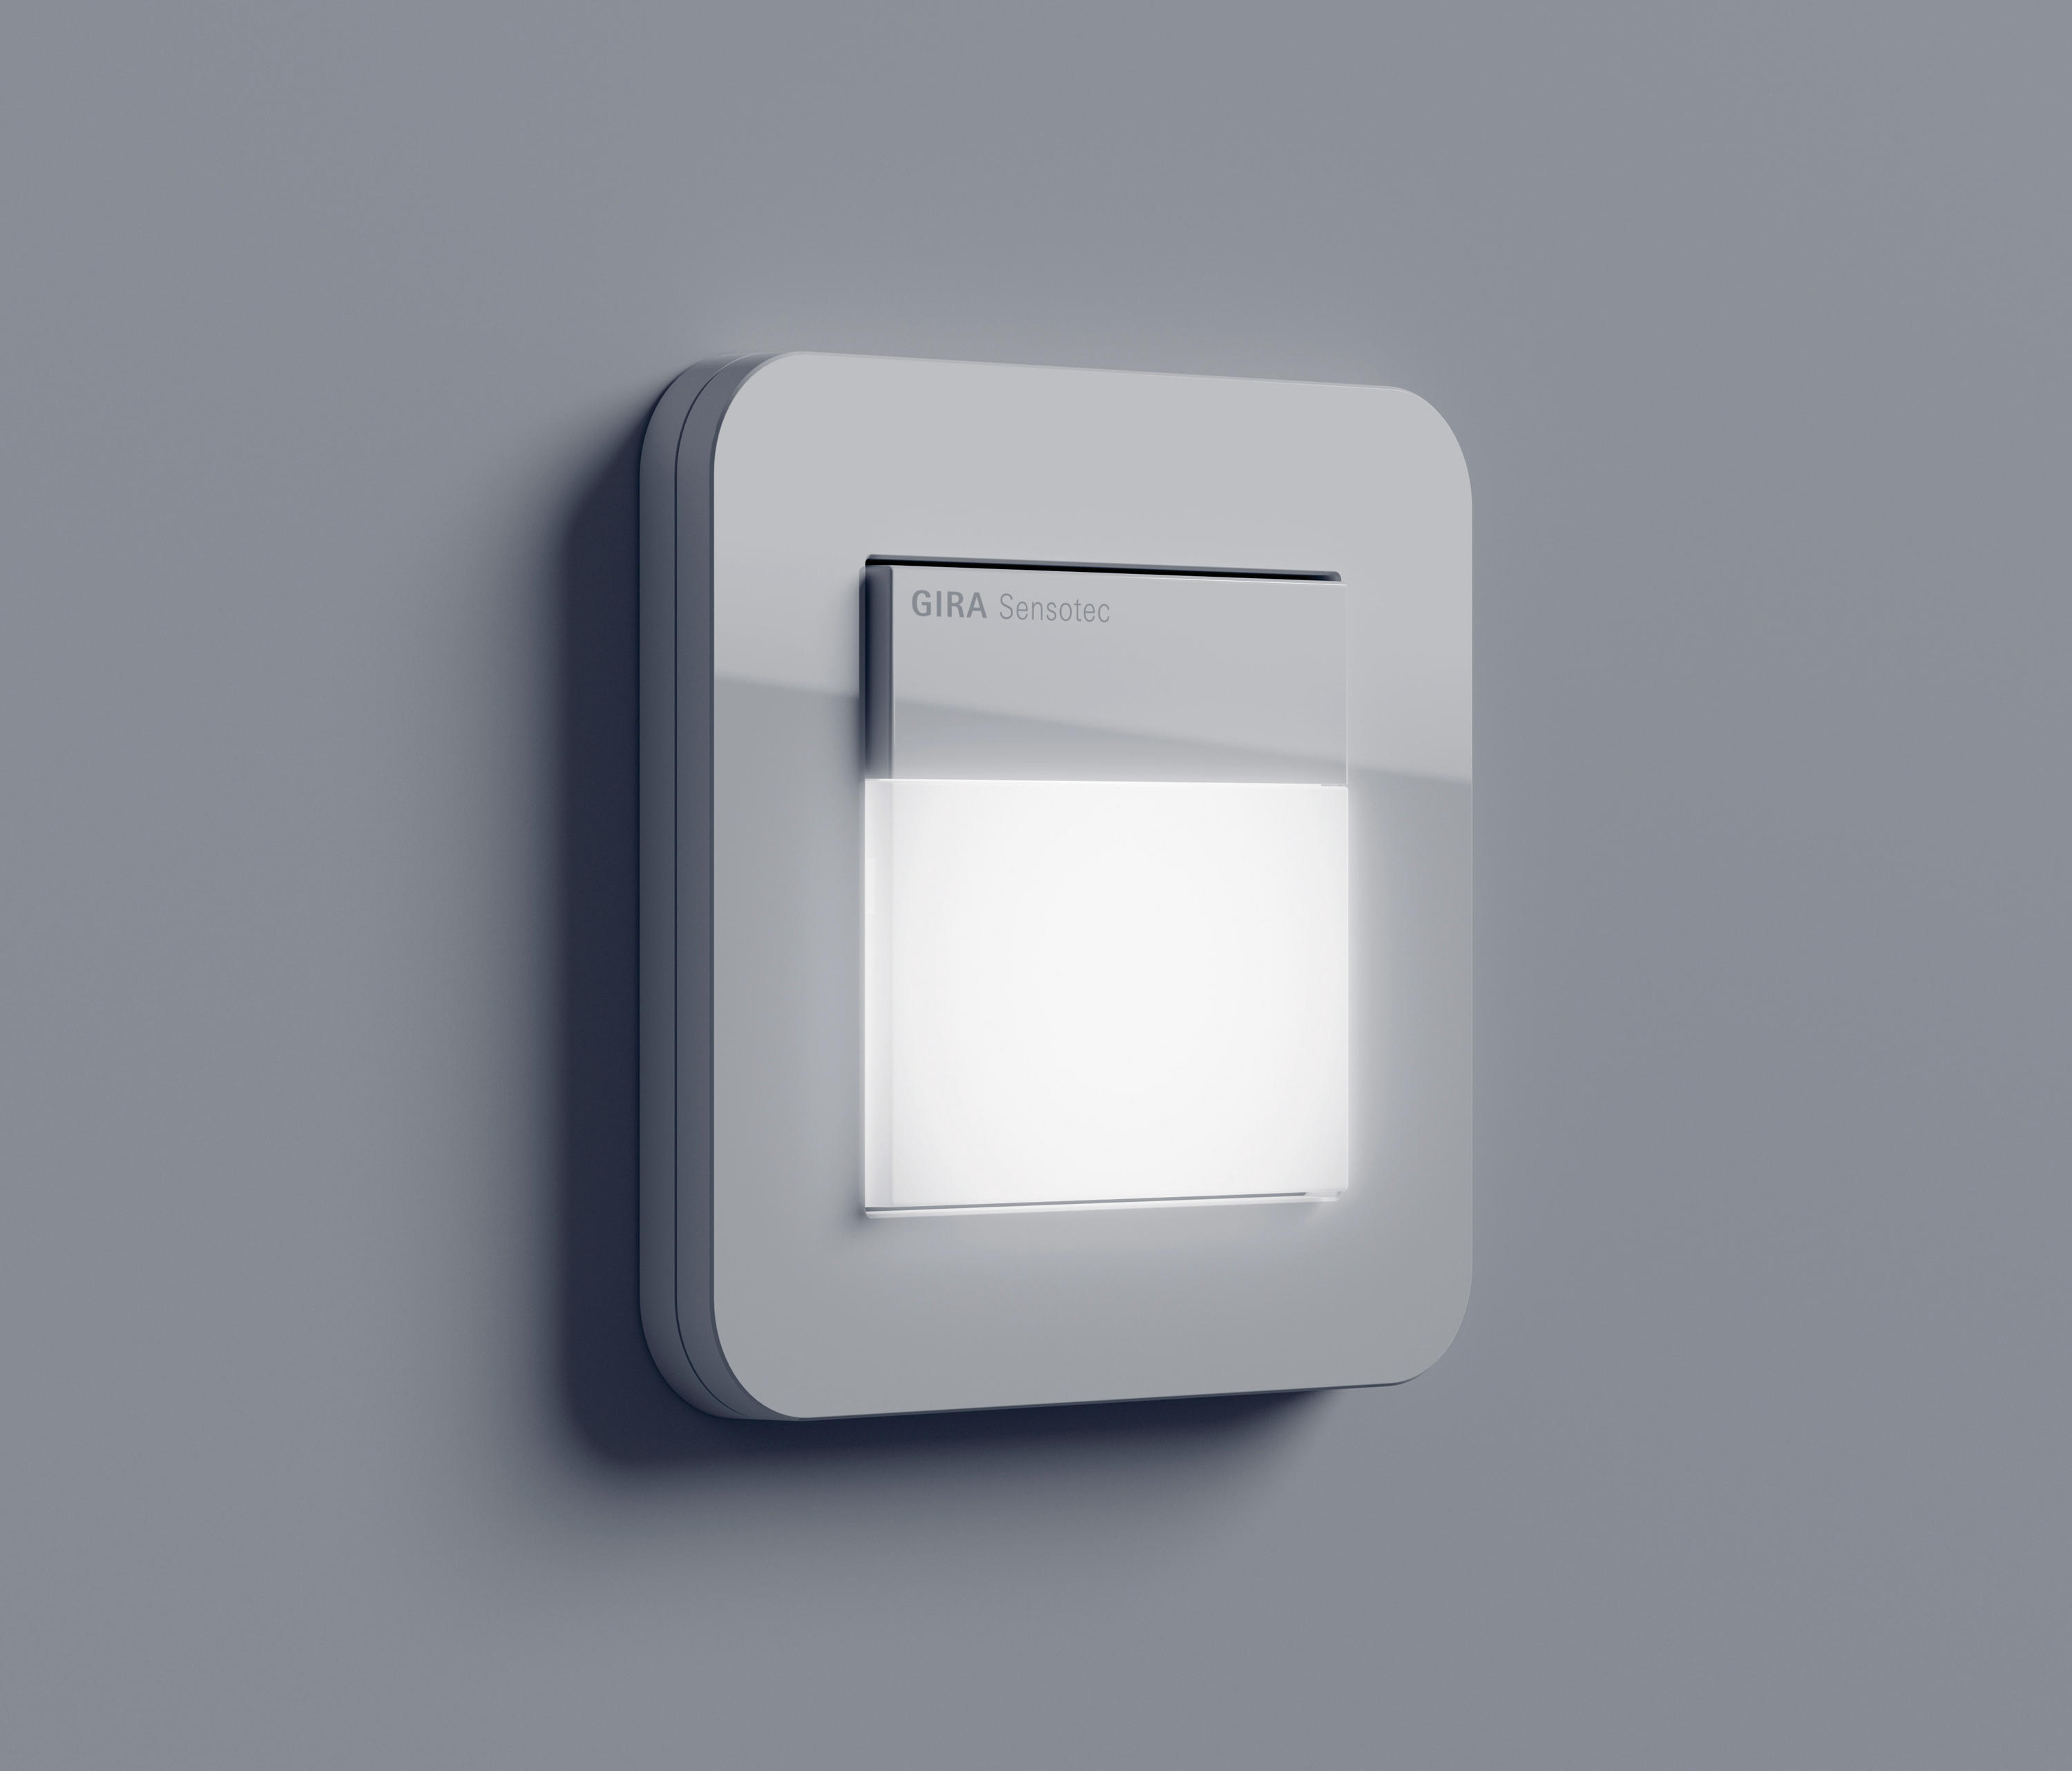 sensotec led presence detectors from gira architonic. Black Bedroom Furniture Sets. Home Design Ideas